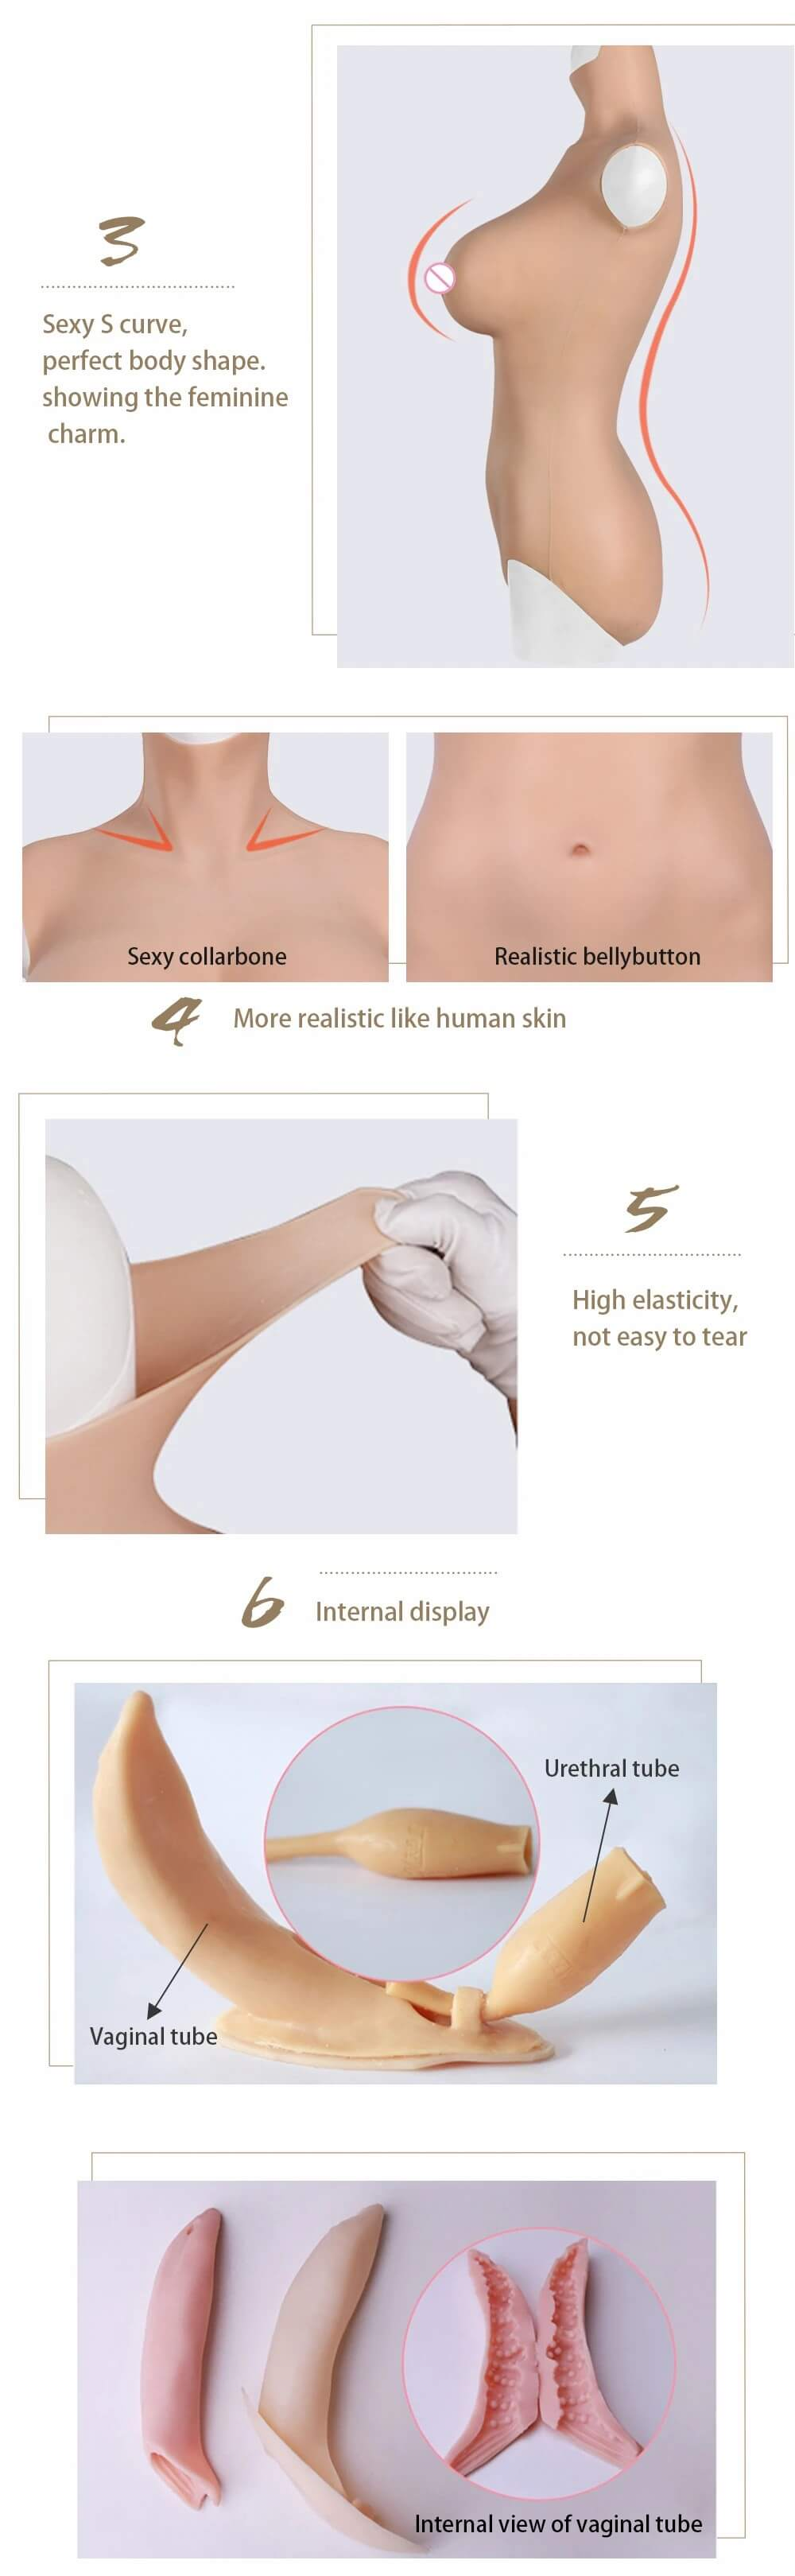 6G silicone body suit feature: more realistic like human skin